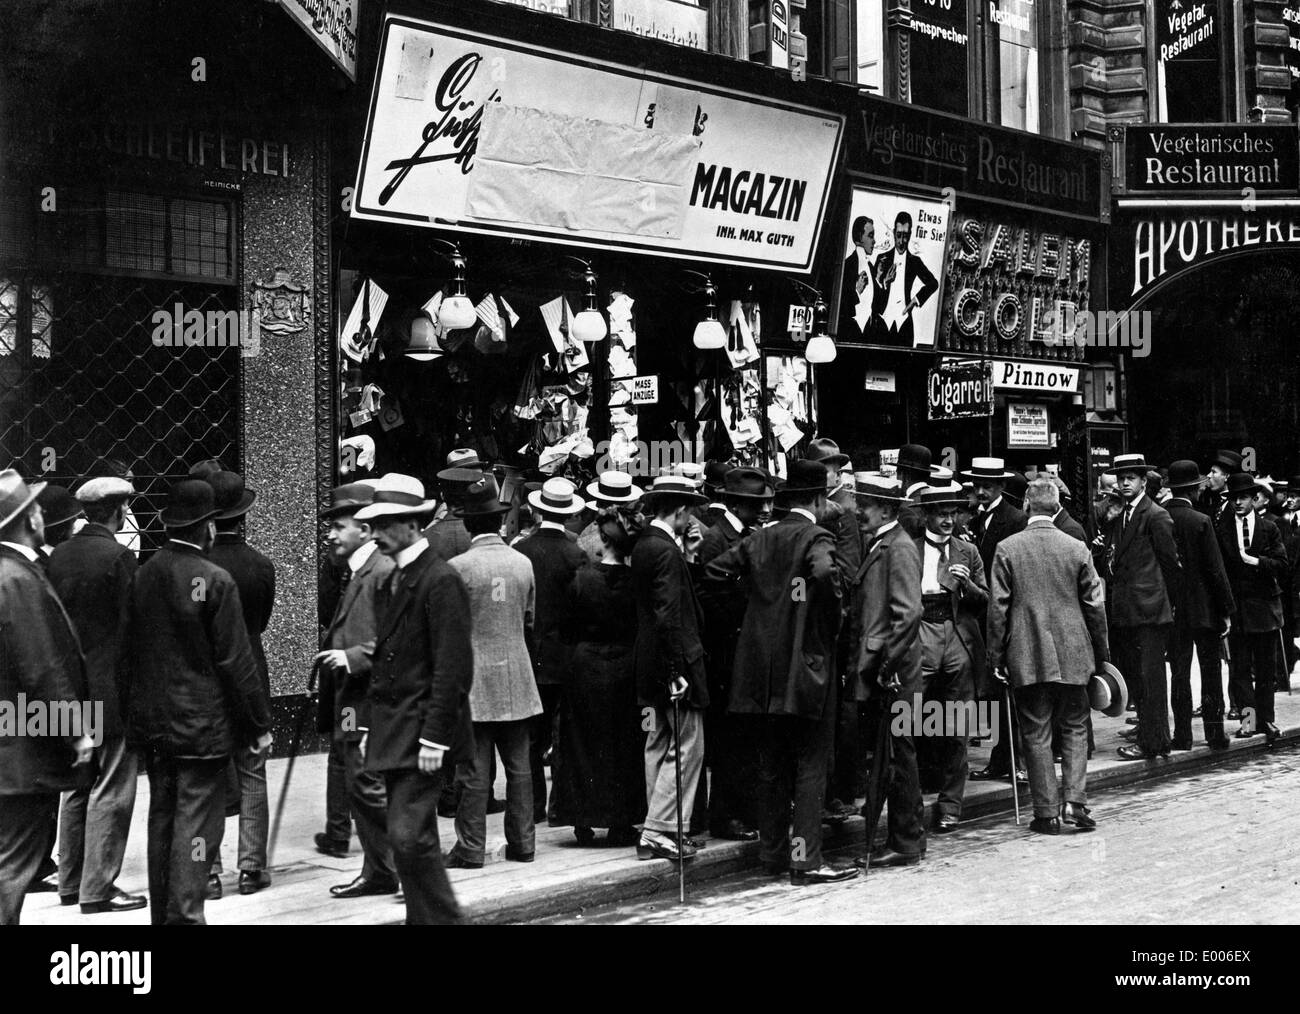 Covered foreign advertisment signs, 1914 - Stock Image